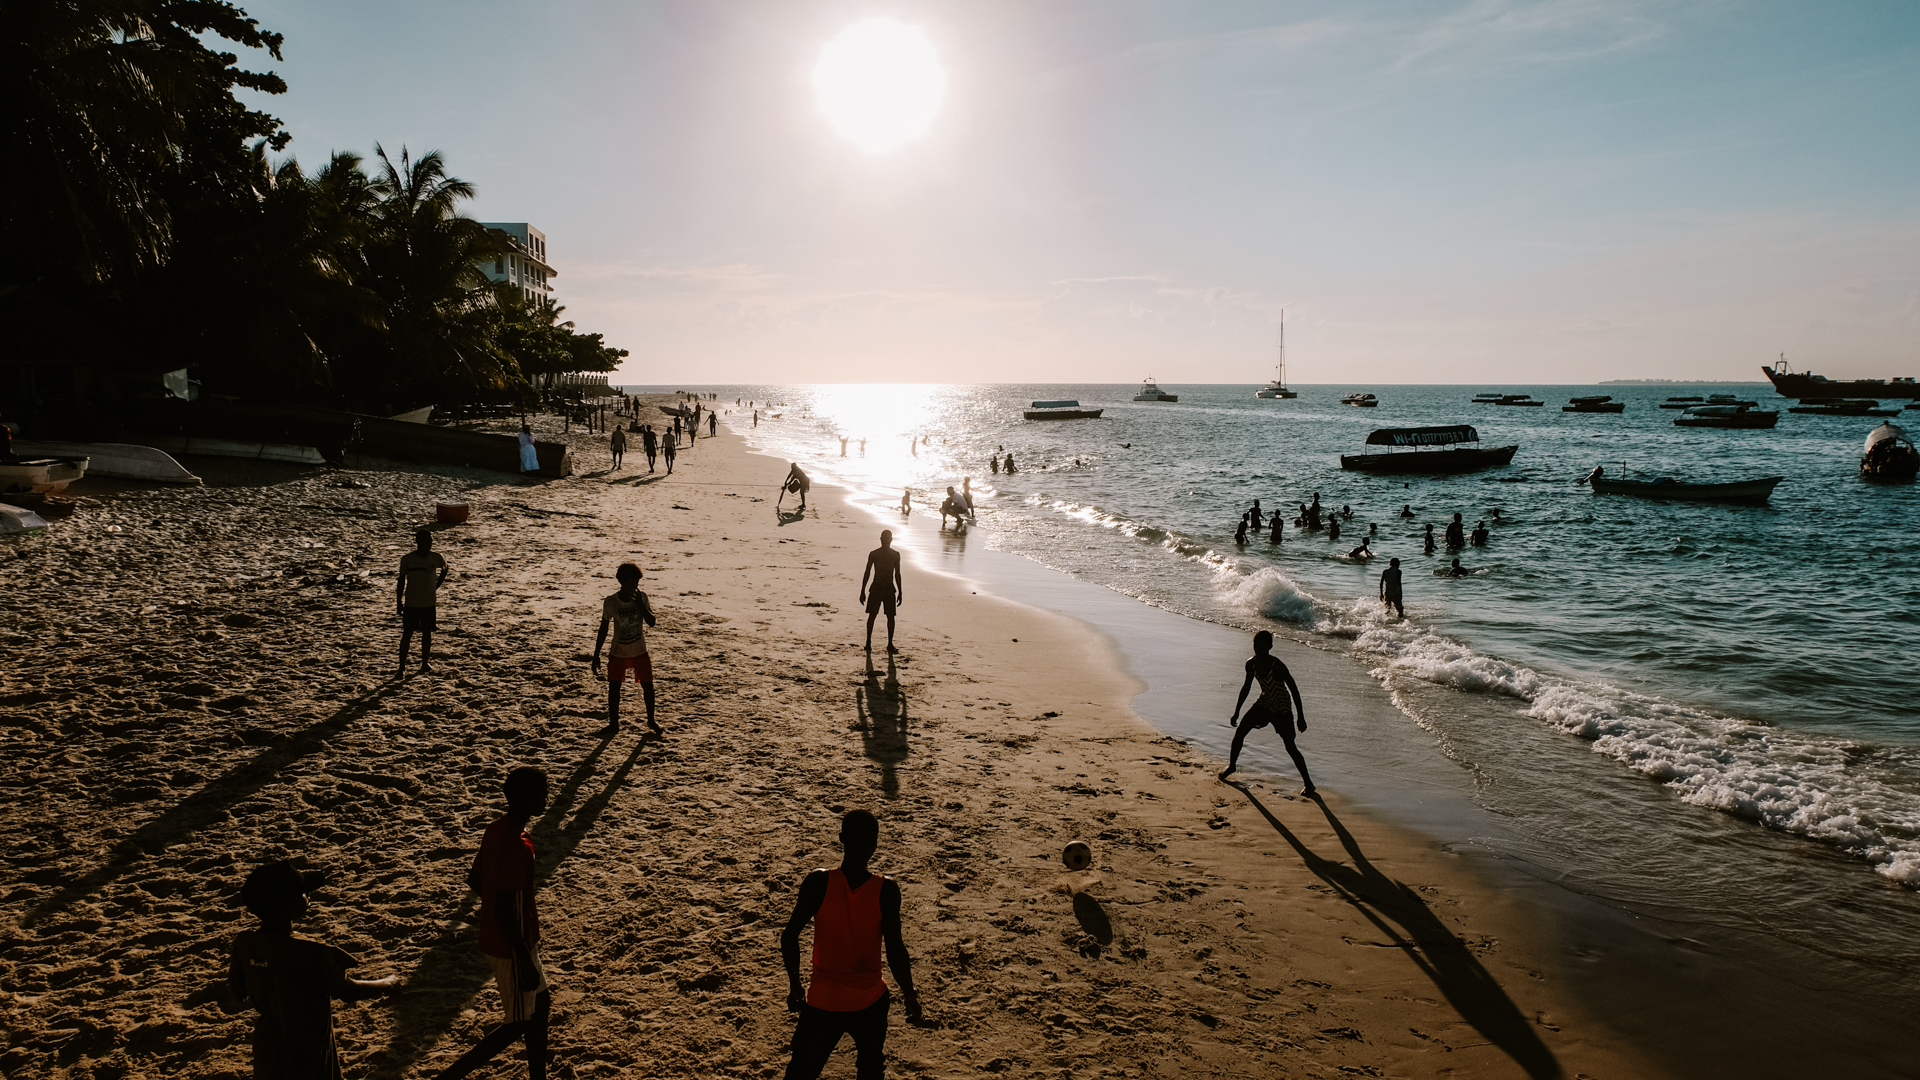 Kids playing football on the beach in our last sunset in Stone Town in Zanzibar, Tanzania